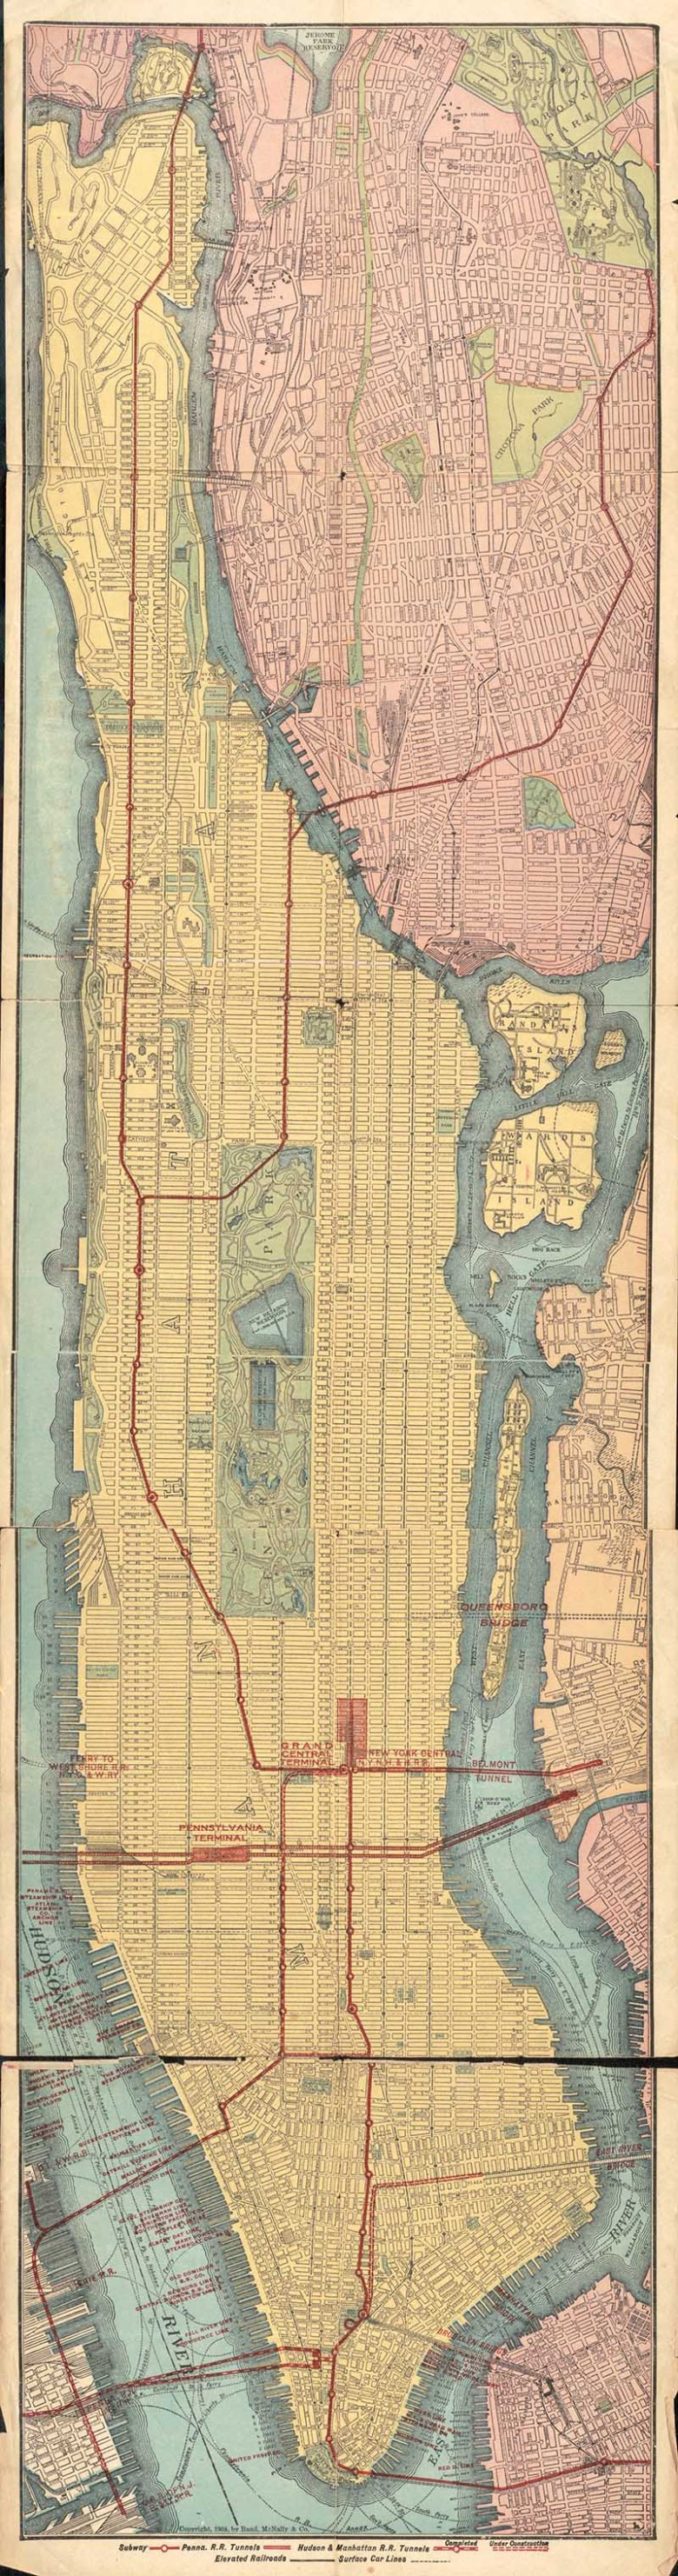 Rapid_transit_map_of_Manhattan_and_adjacent_districts_of_New_York_City